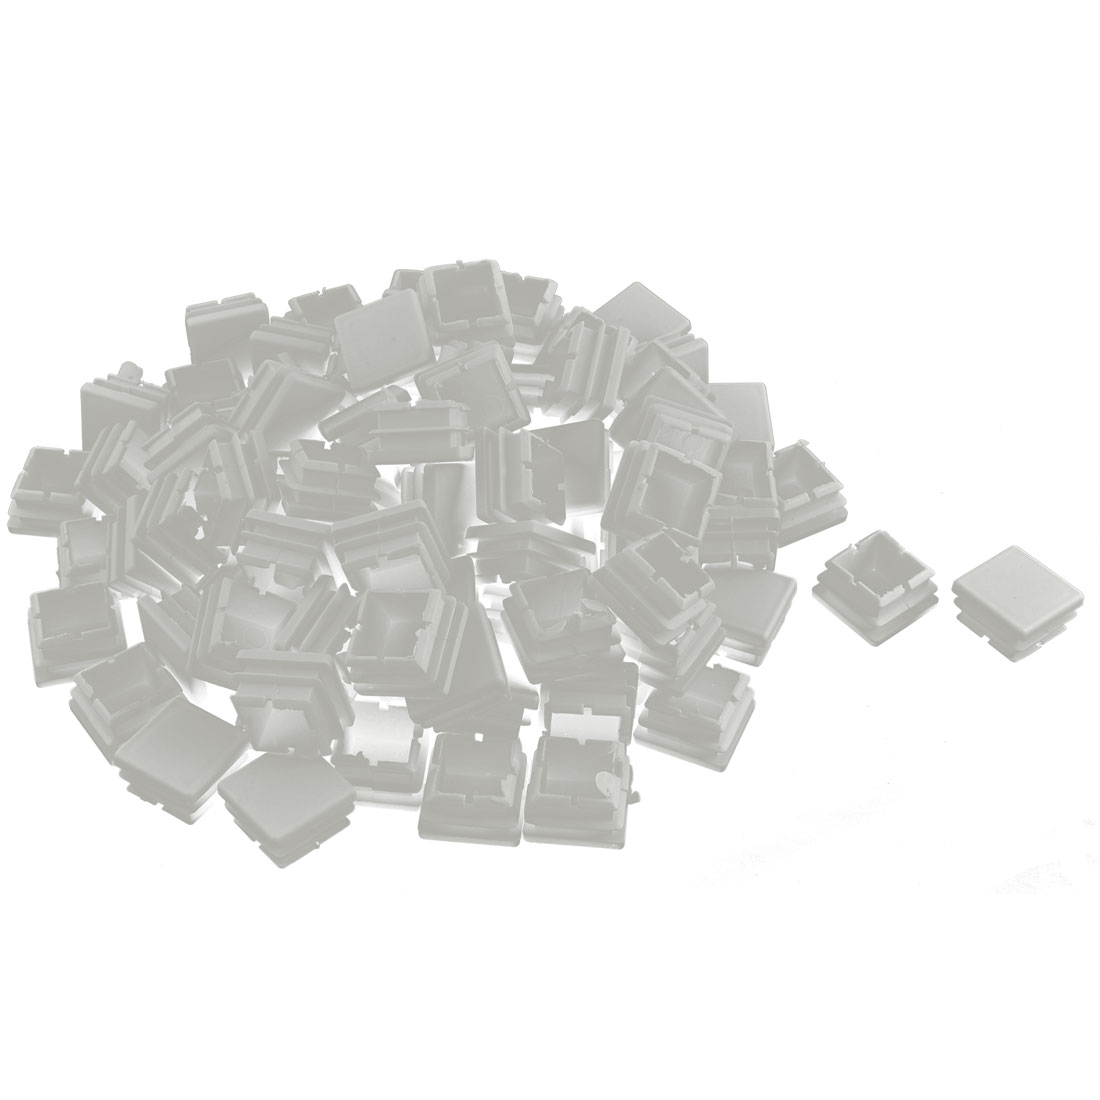 Plastic Square Tube Pipe Inserts End Blanking Caps White 25mmx25mm 100 Pcs